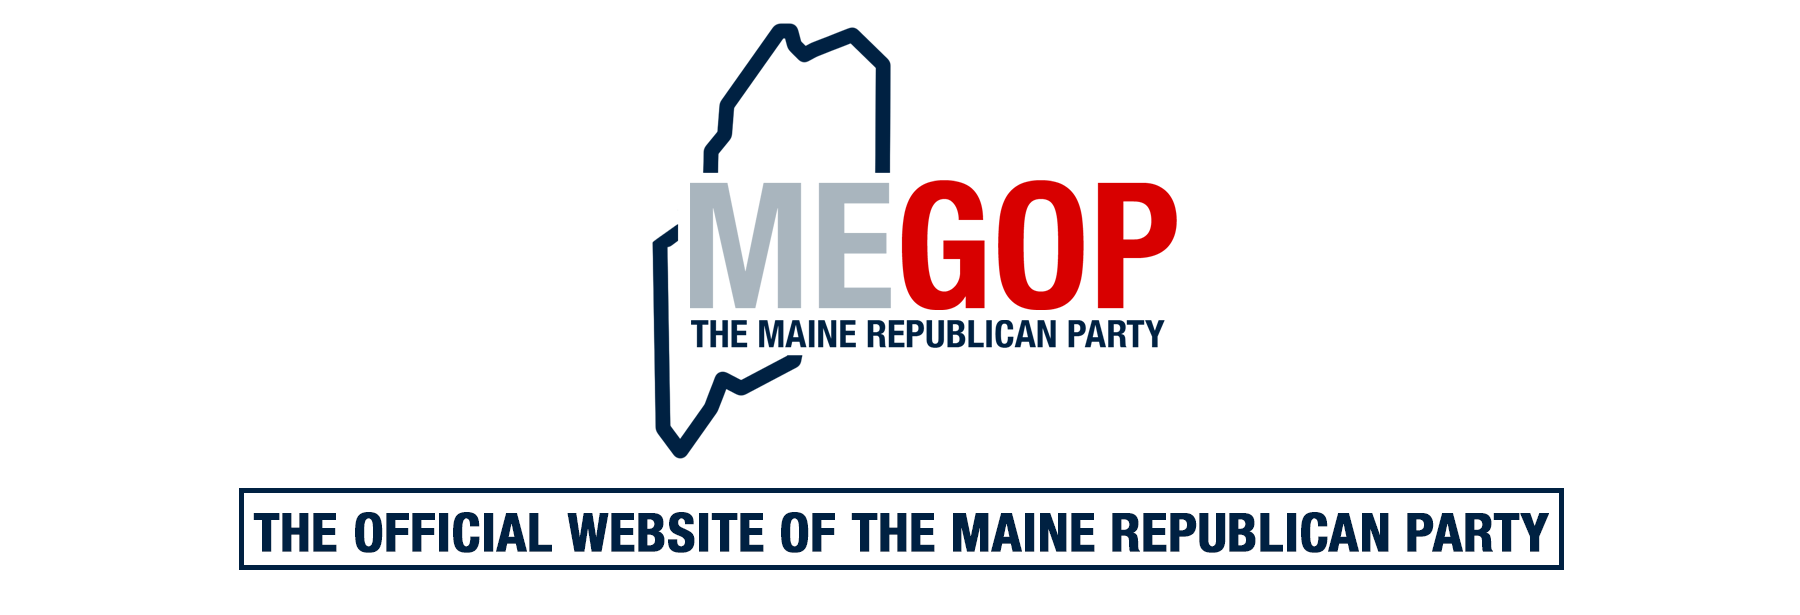 Maine Republican Party: 1 Maine GOP Website (Main Donation Page)